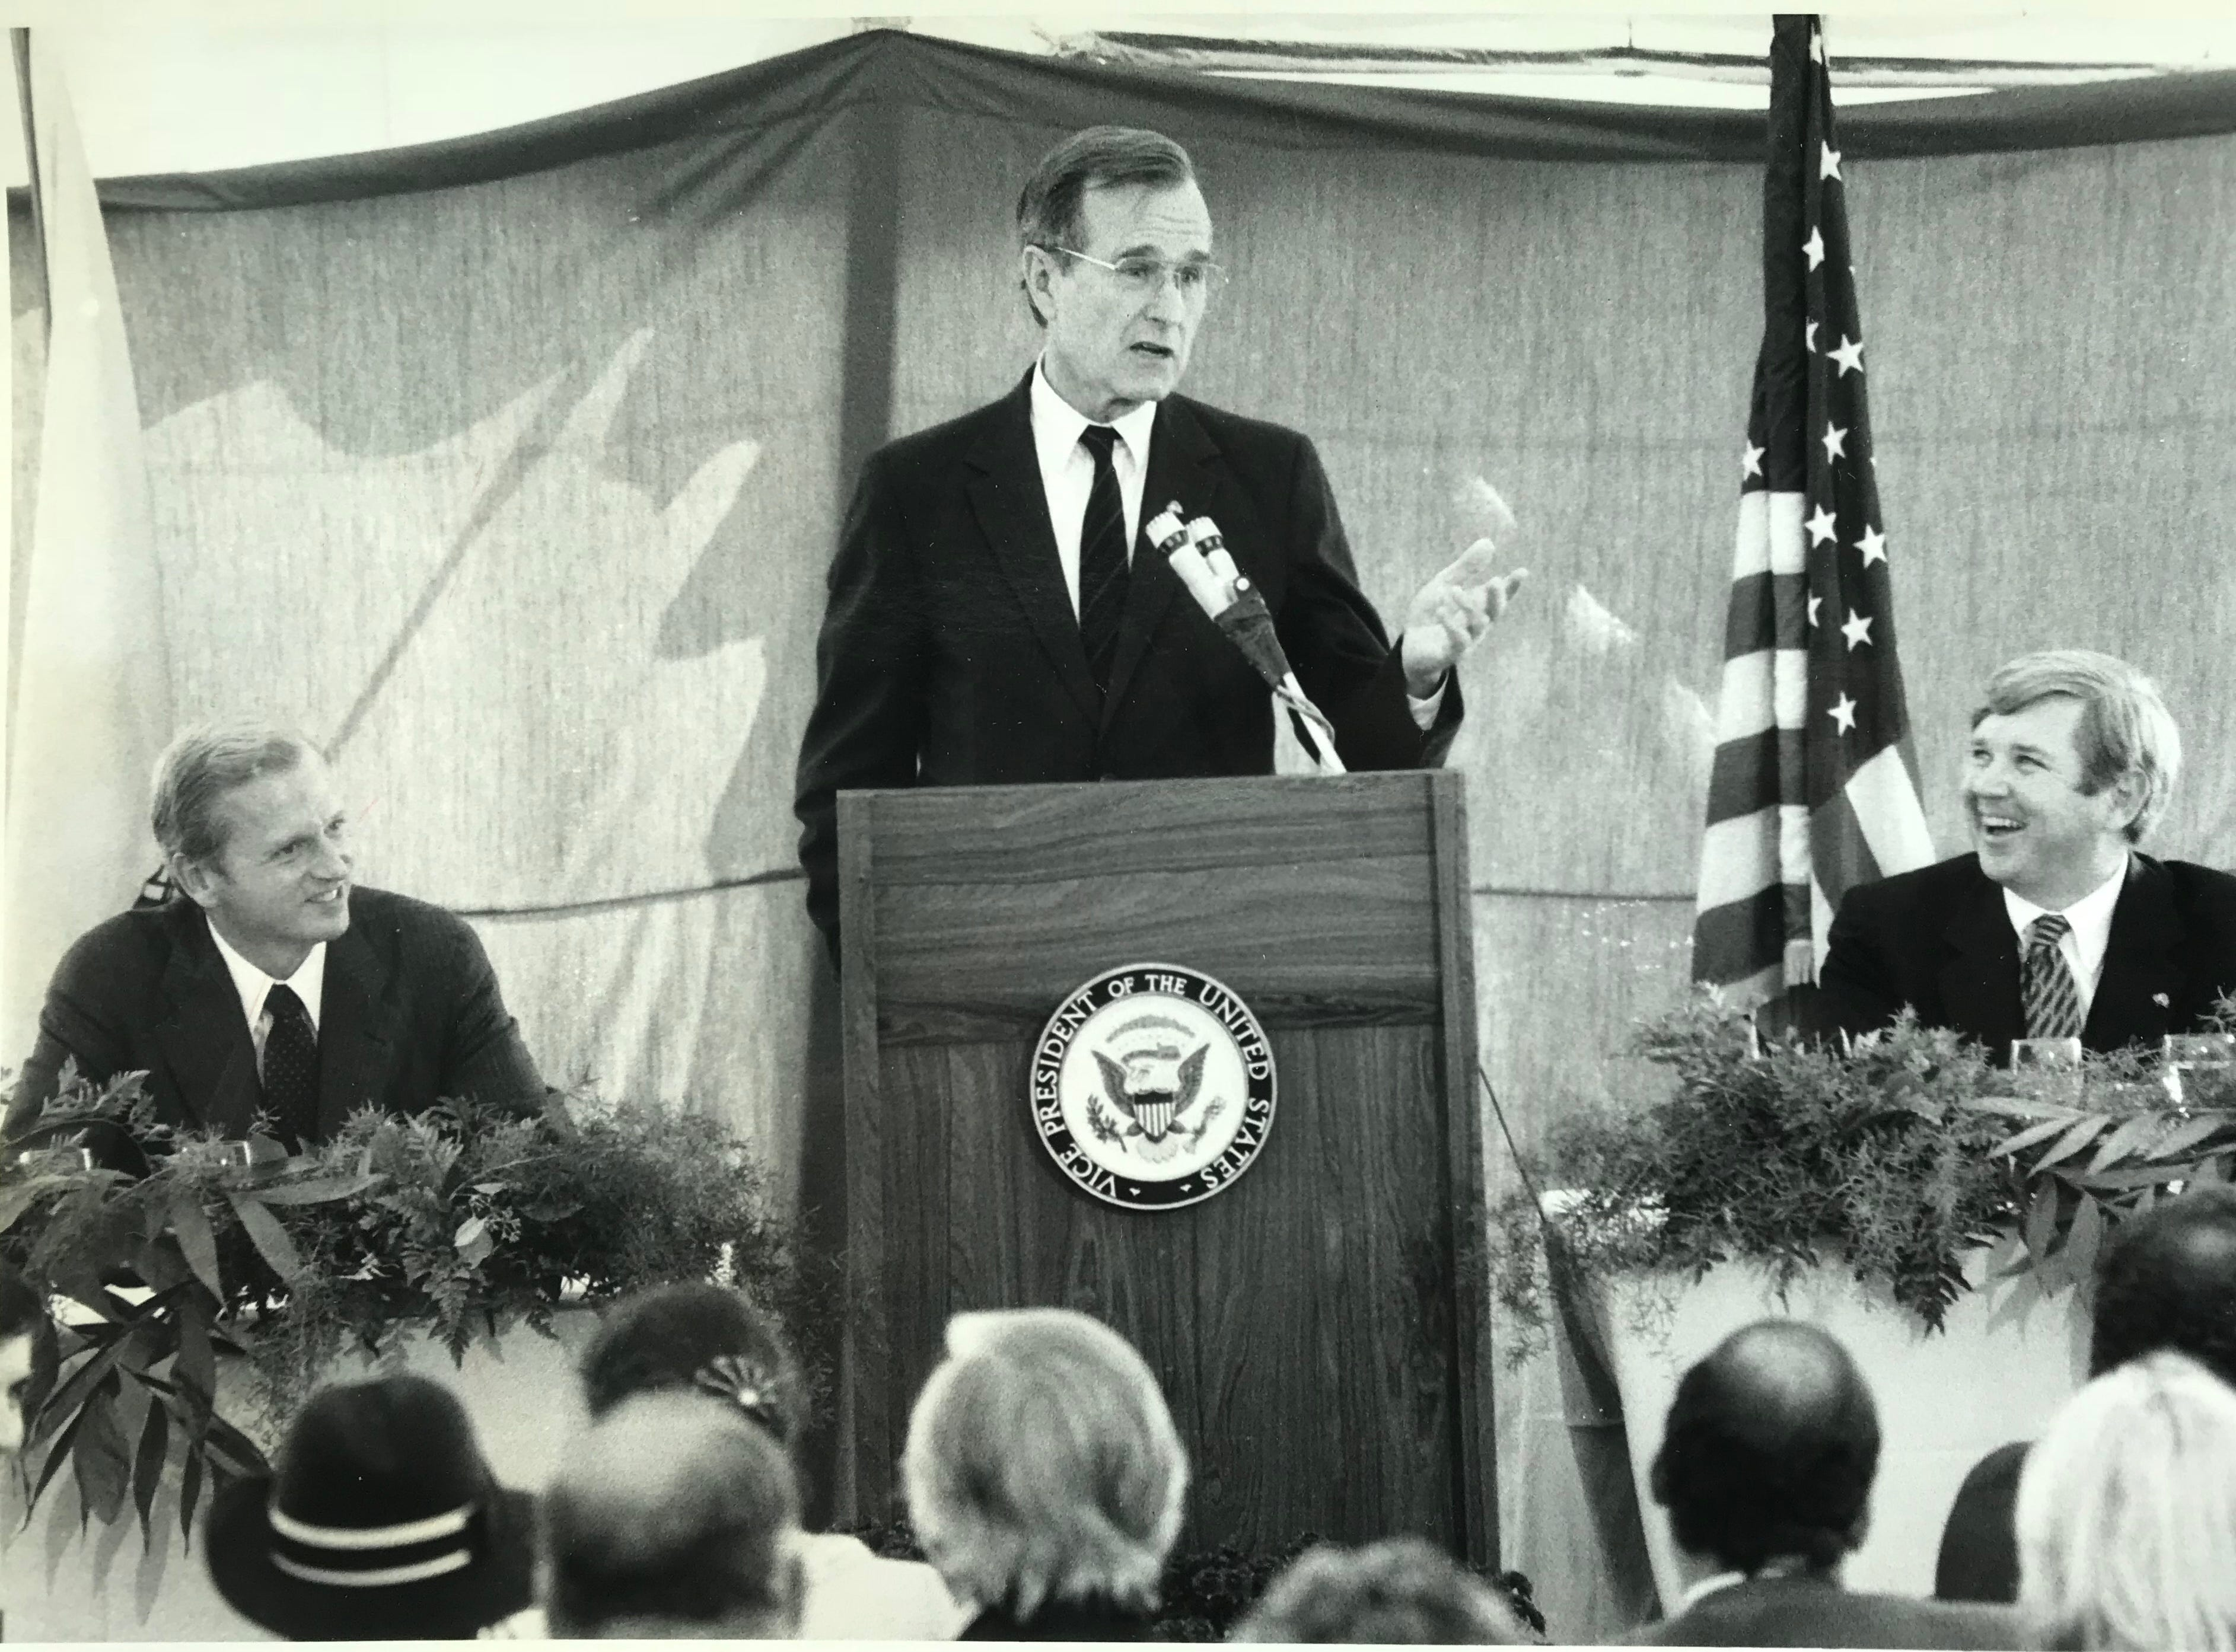 Vice President George H.W. Bush speaks at a Republican fundraiser in Lakewood, with supporter and fundraiser Larry Bathgate II (right), in October 1983.